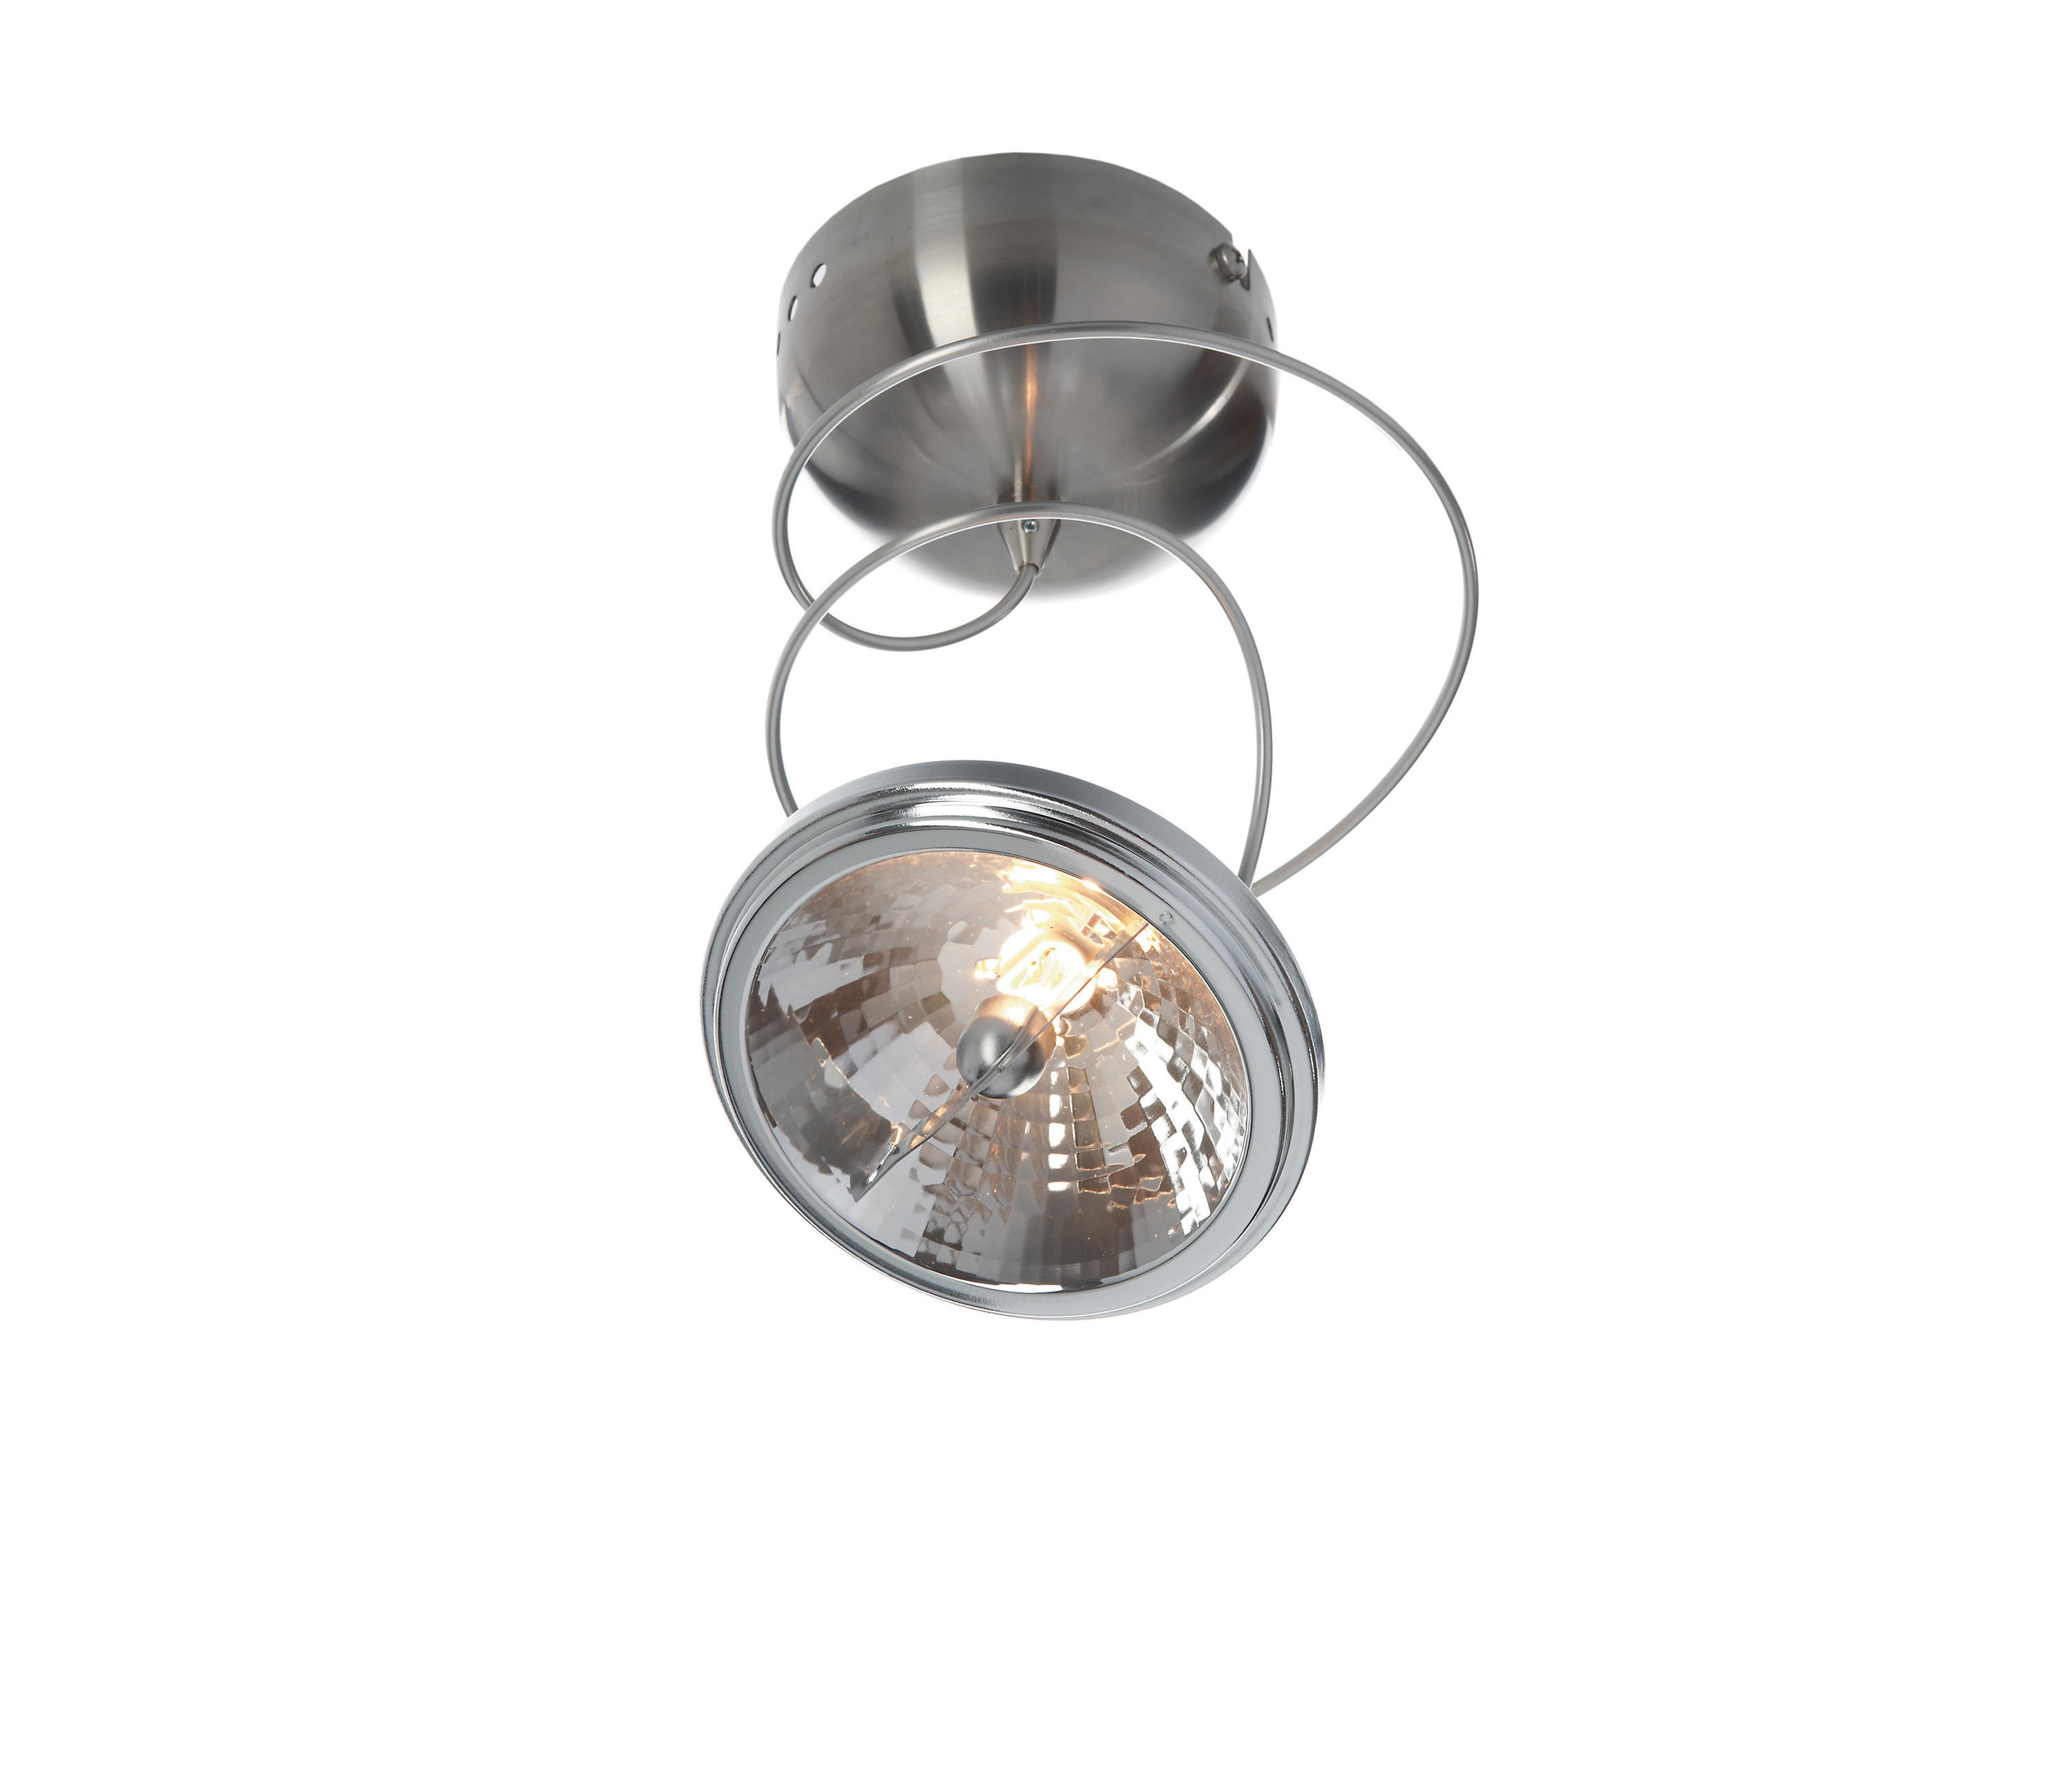 Wall Lamps At Target : Target ceiling-/wall lamp PL 1 - General lighting by HARCO LOOR Architonic